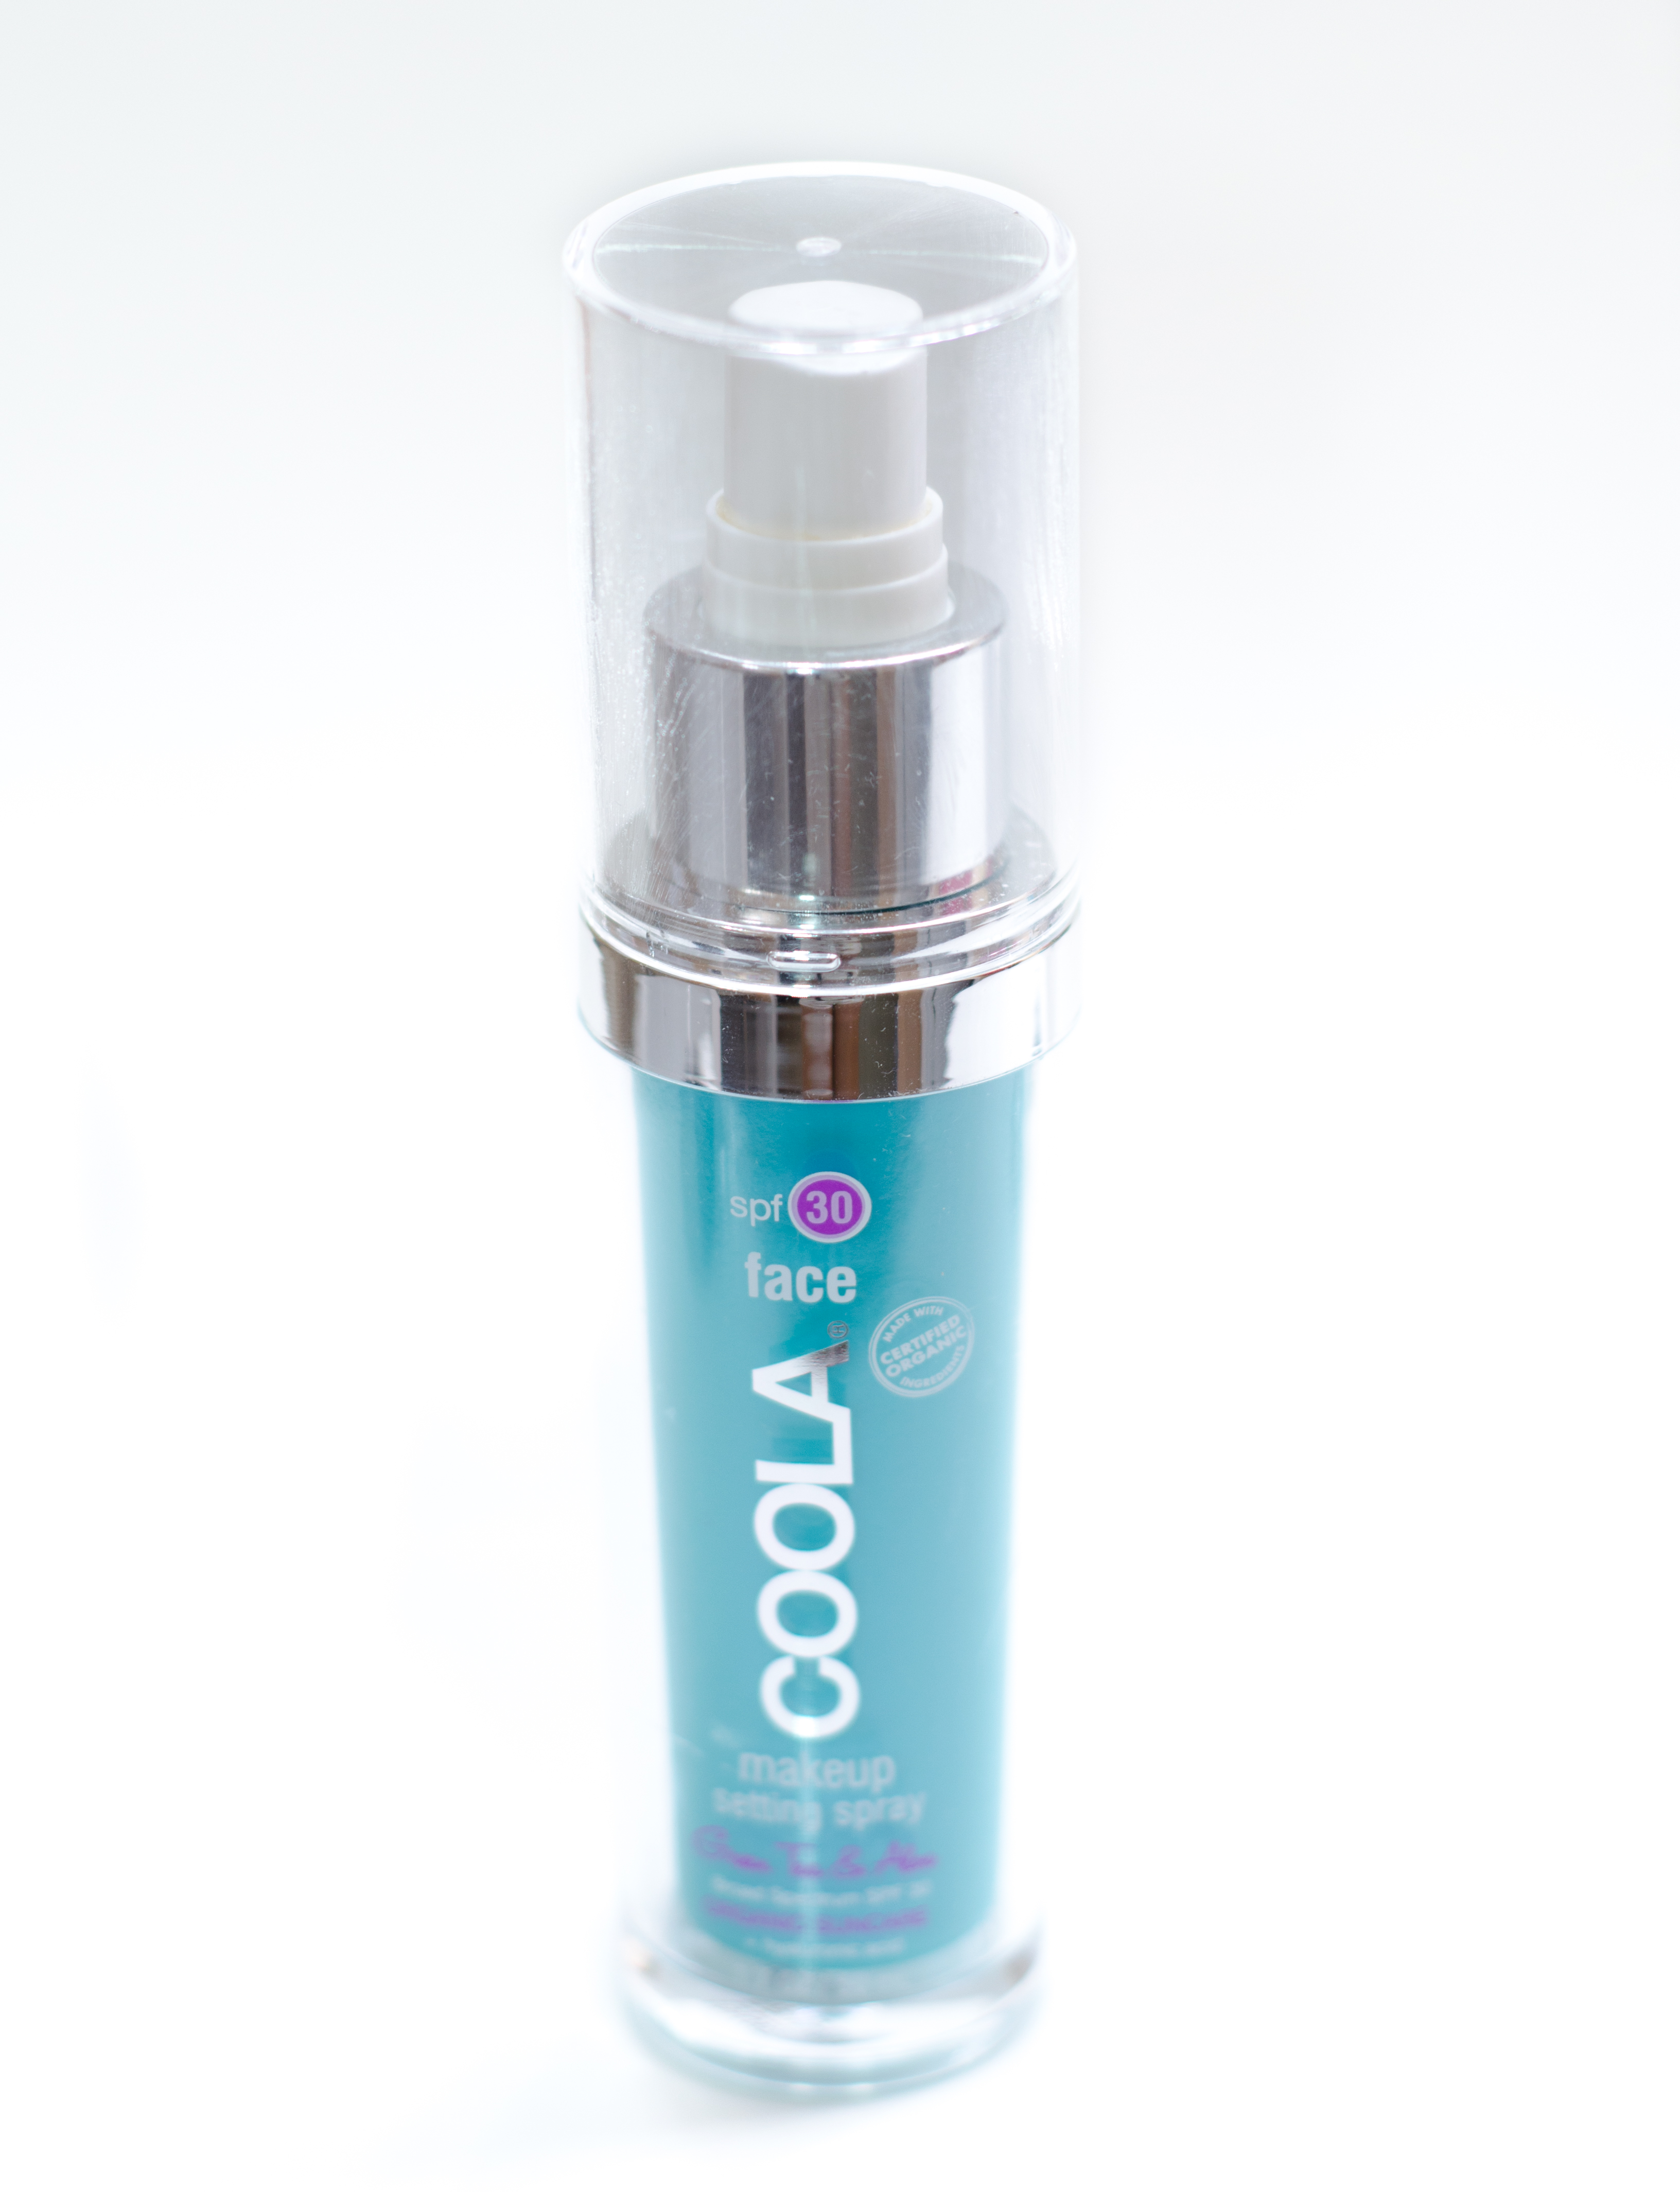 coola makeup setting spray spf 30 review